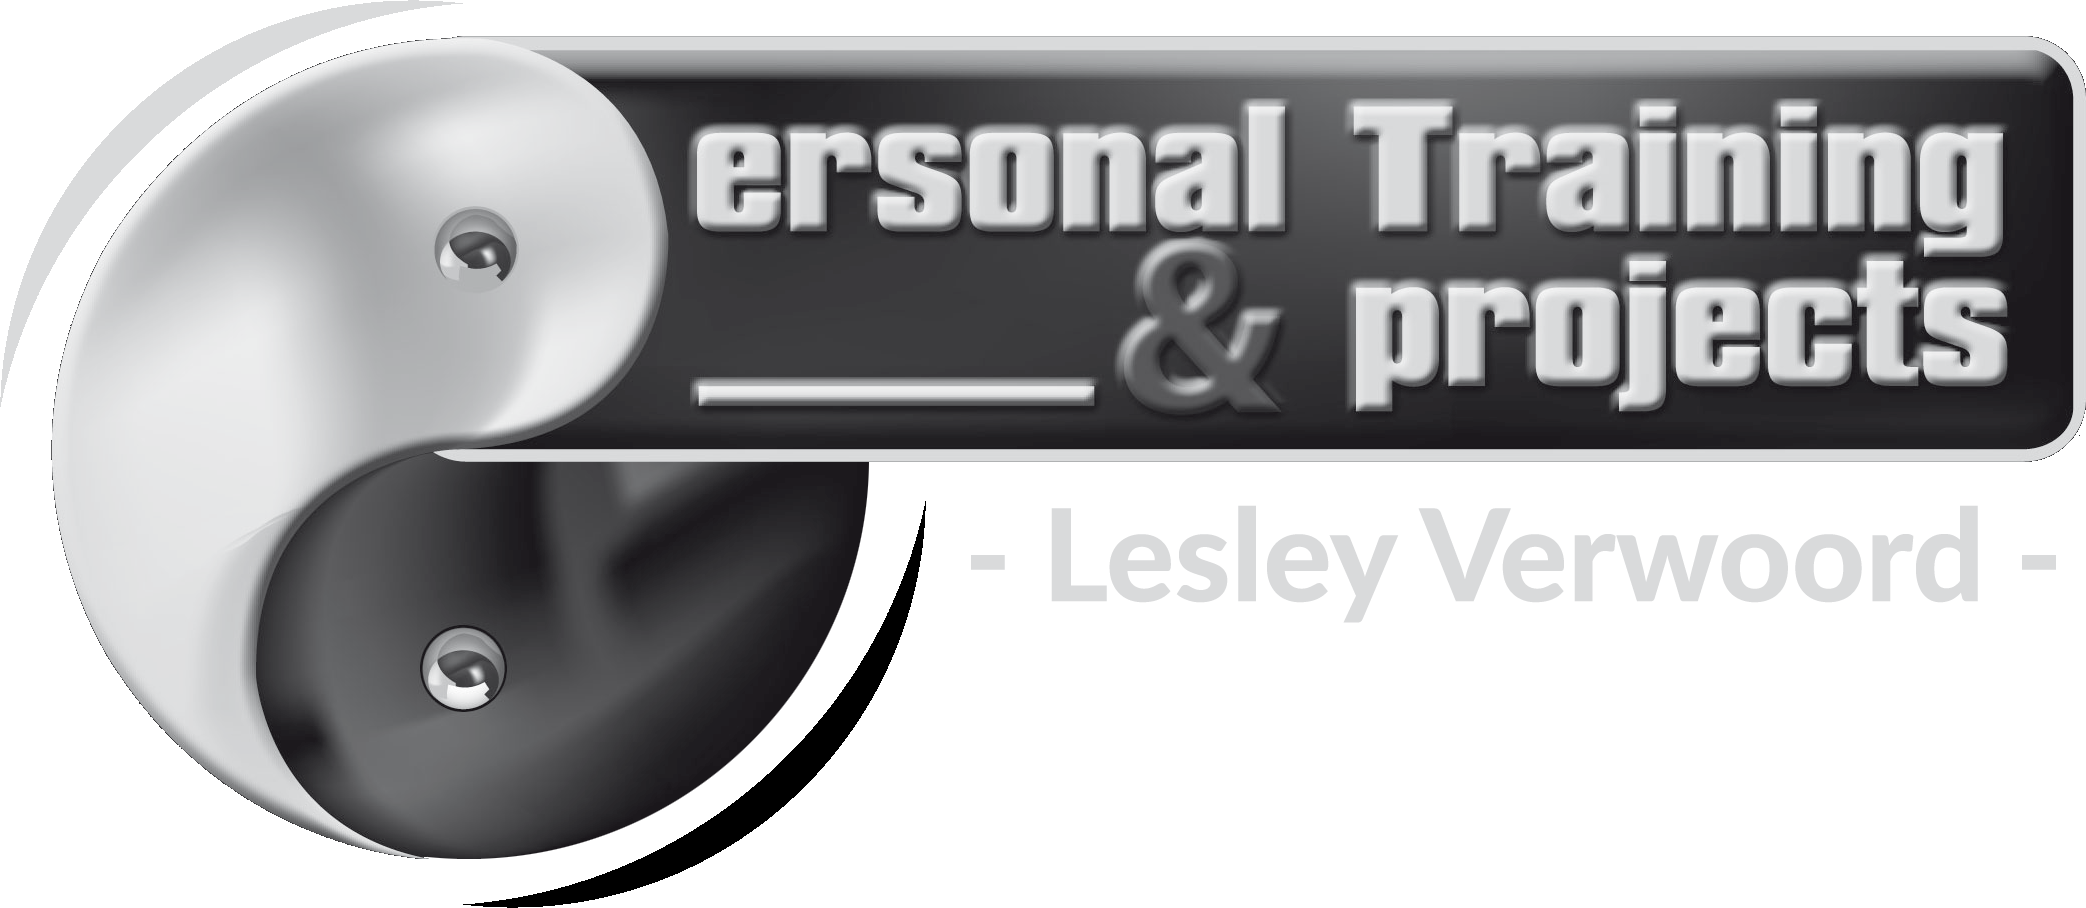 Personal Training & Projects